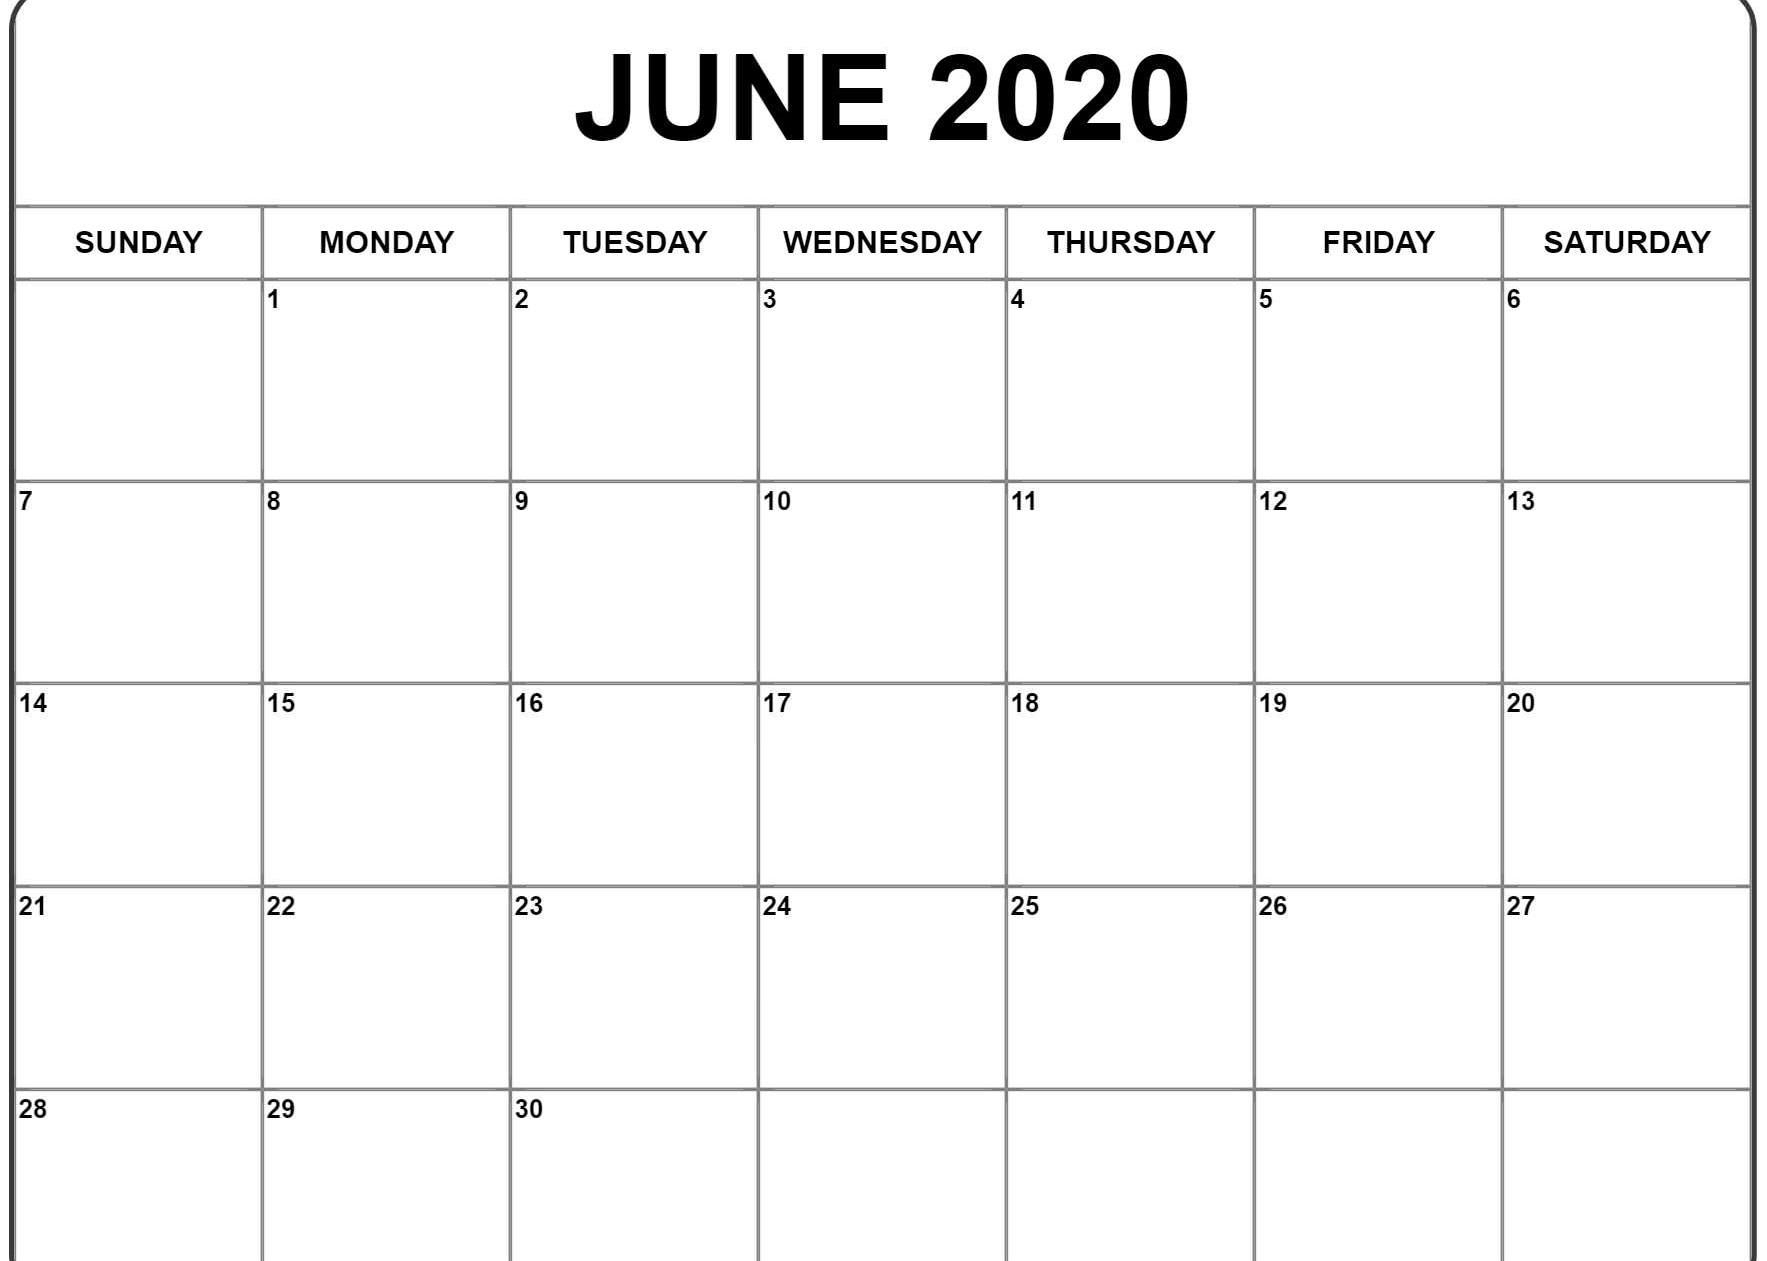 June 2020 Calendar | Printable Calendar Template, Calendar intended for Free Printable 2020 Calendars You Don't Have To Download